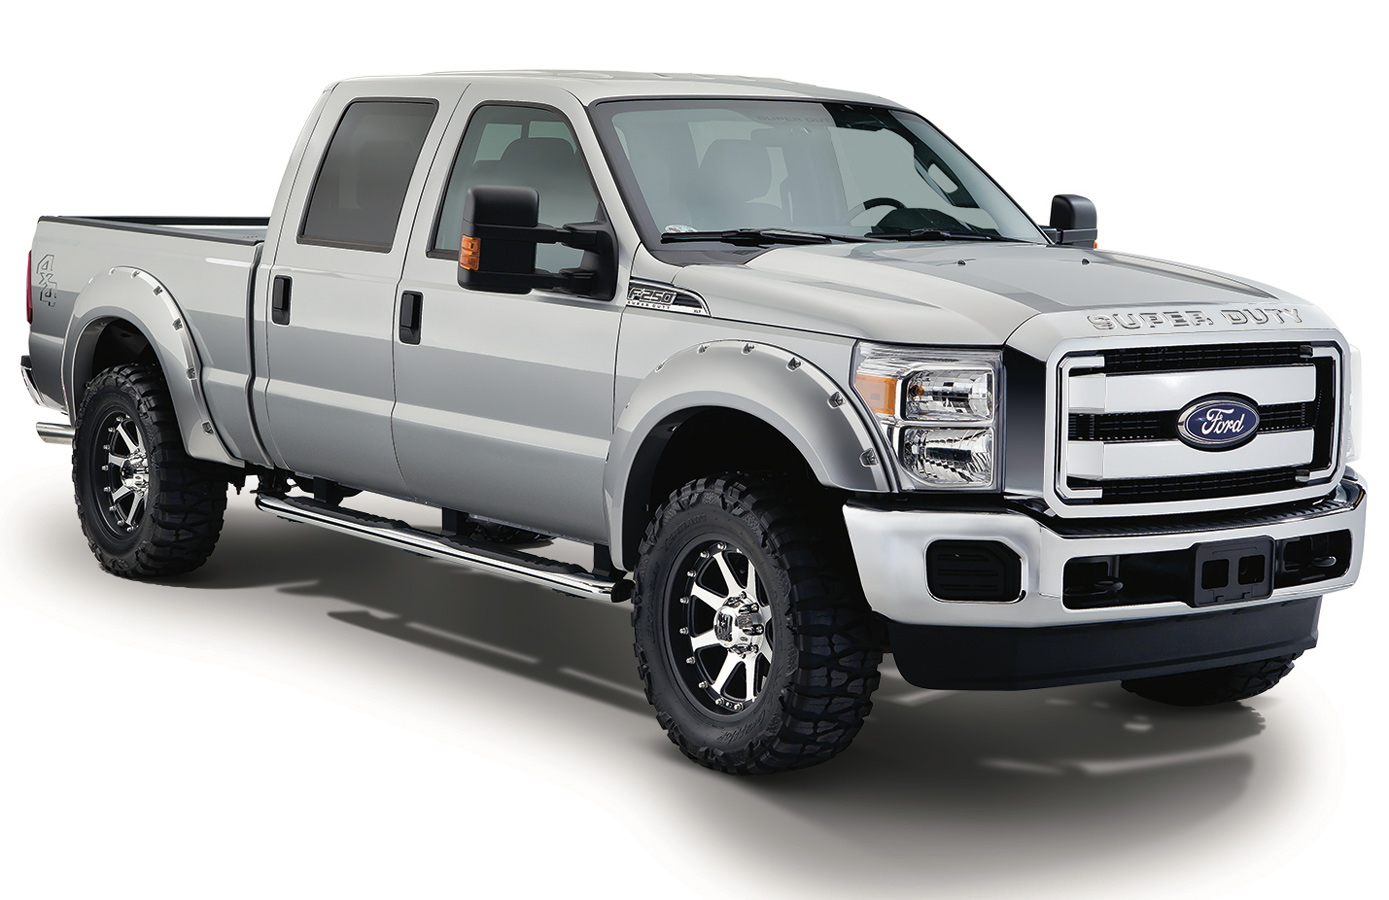 2015 2018 ford f150 bushwacker pocket style color fender. Black Bedroom Furniture Sets. Home Design Ideas